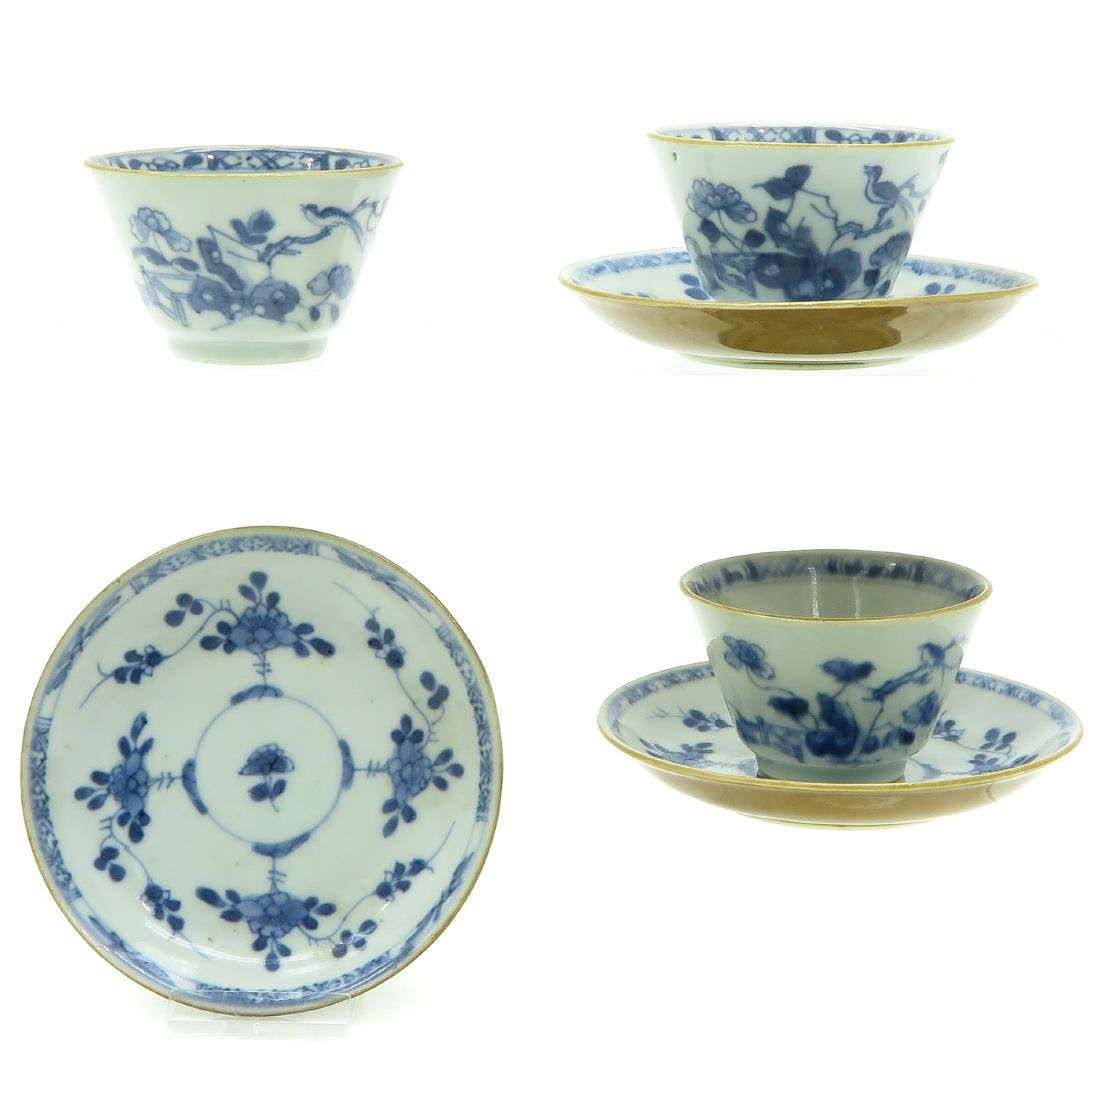 Lot of 3 Cups and Saucers